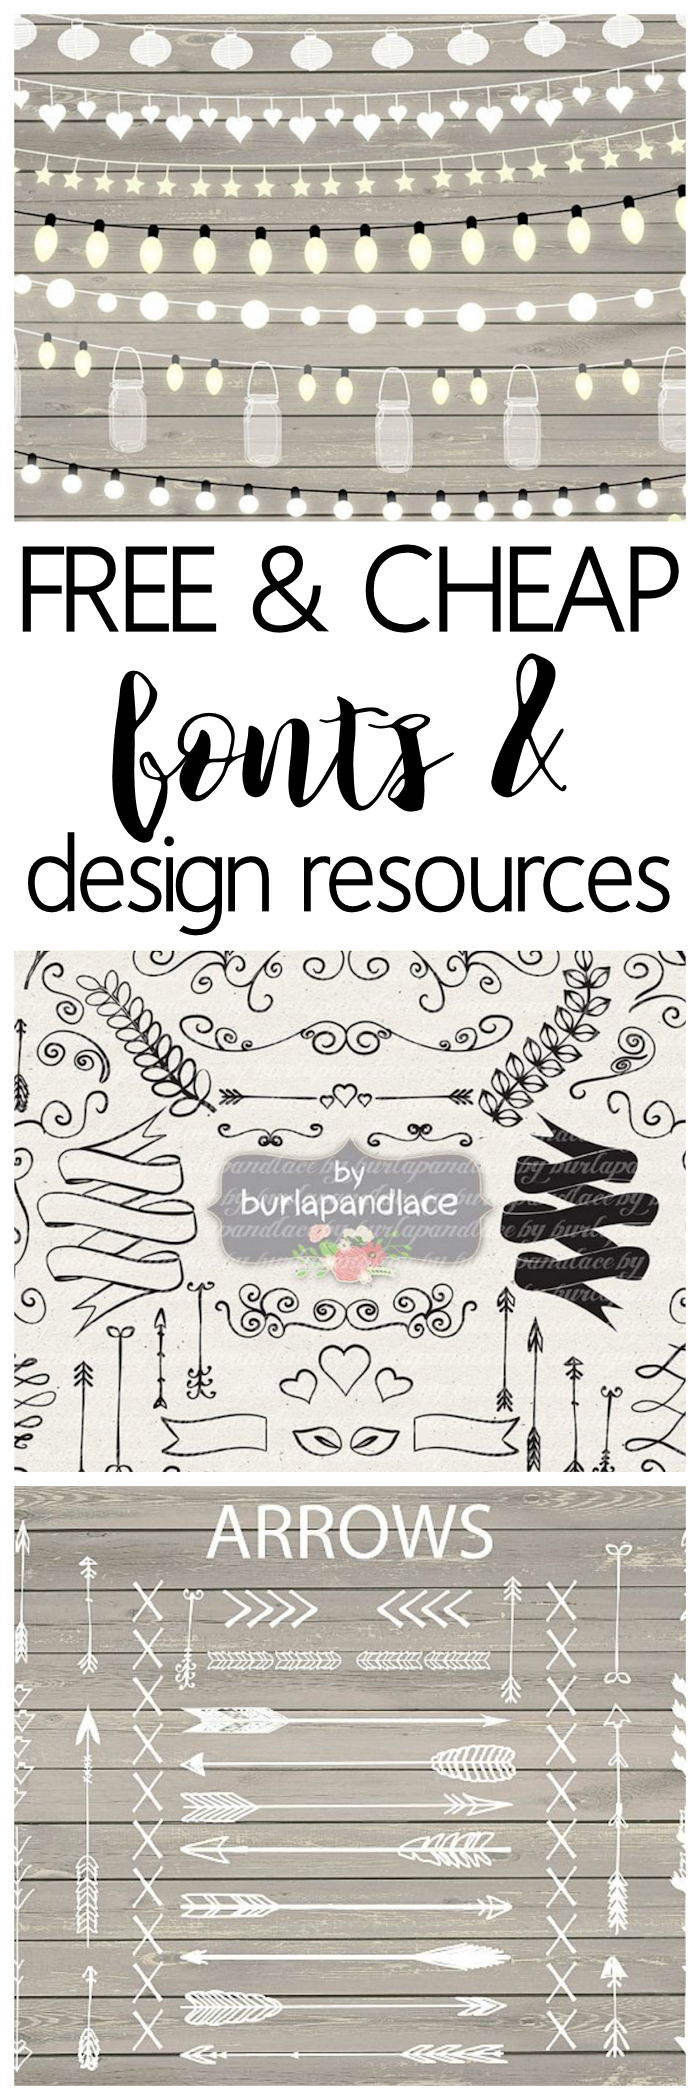 Free and Cheap Fonts and Design Resources - The Girl Creative